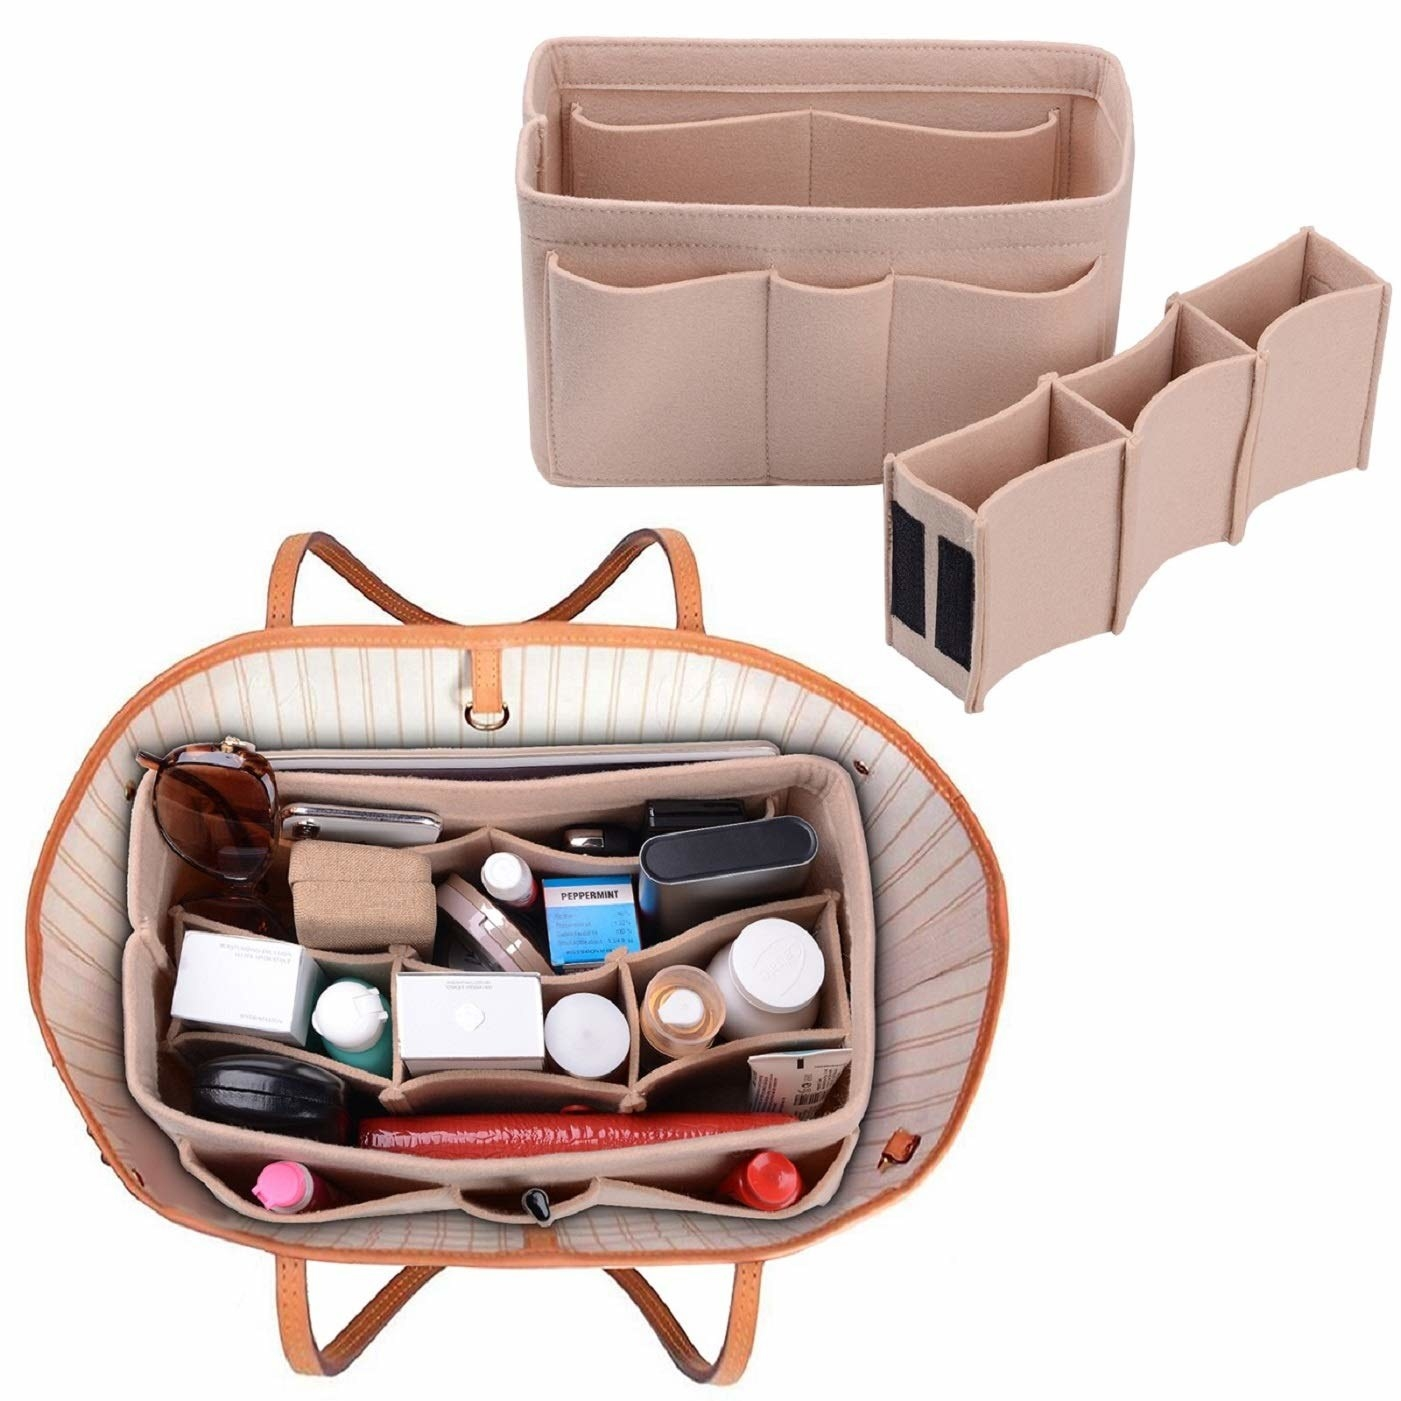 The pink felt organizer, seen on its own and then organizing items inside a tote